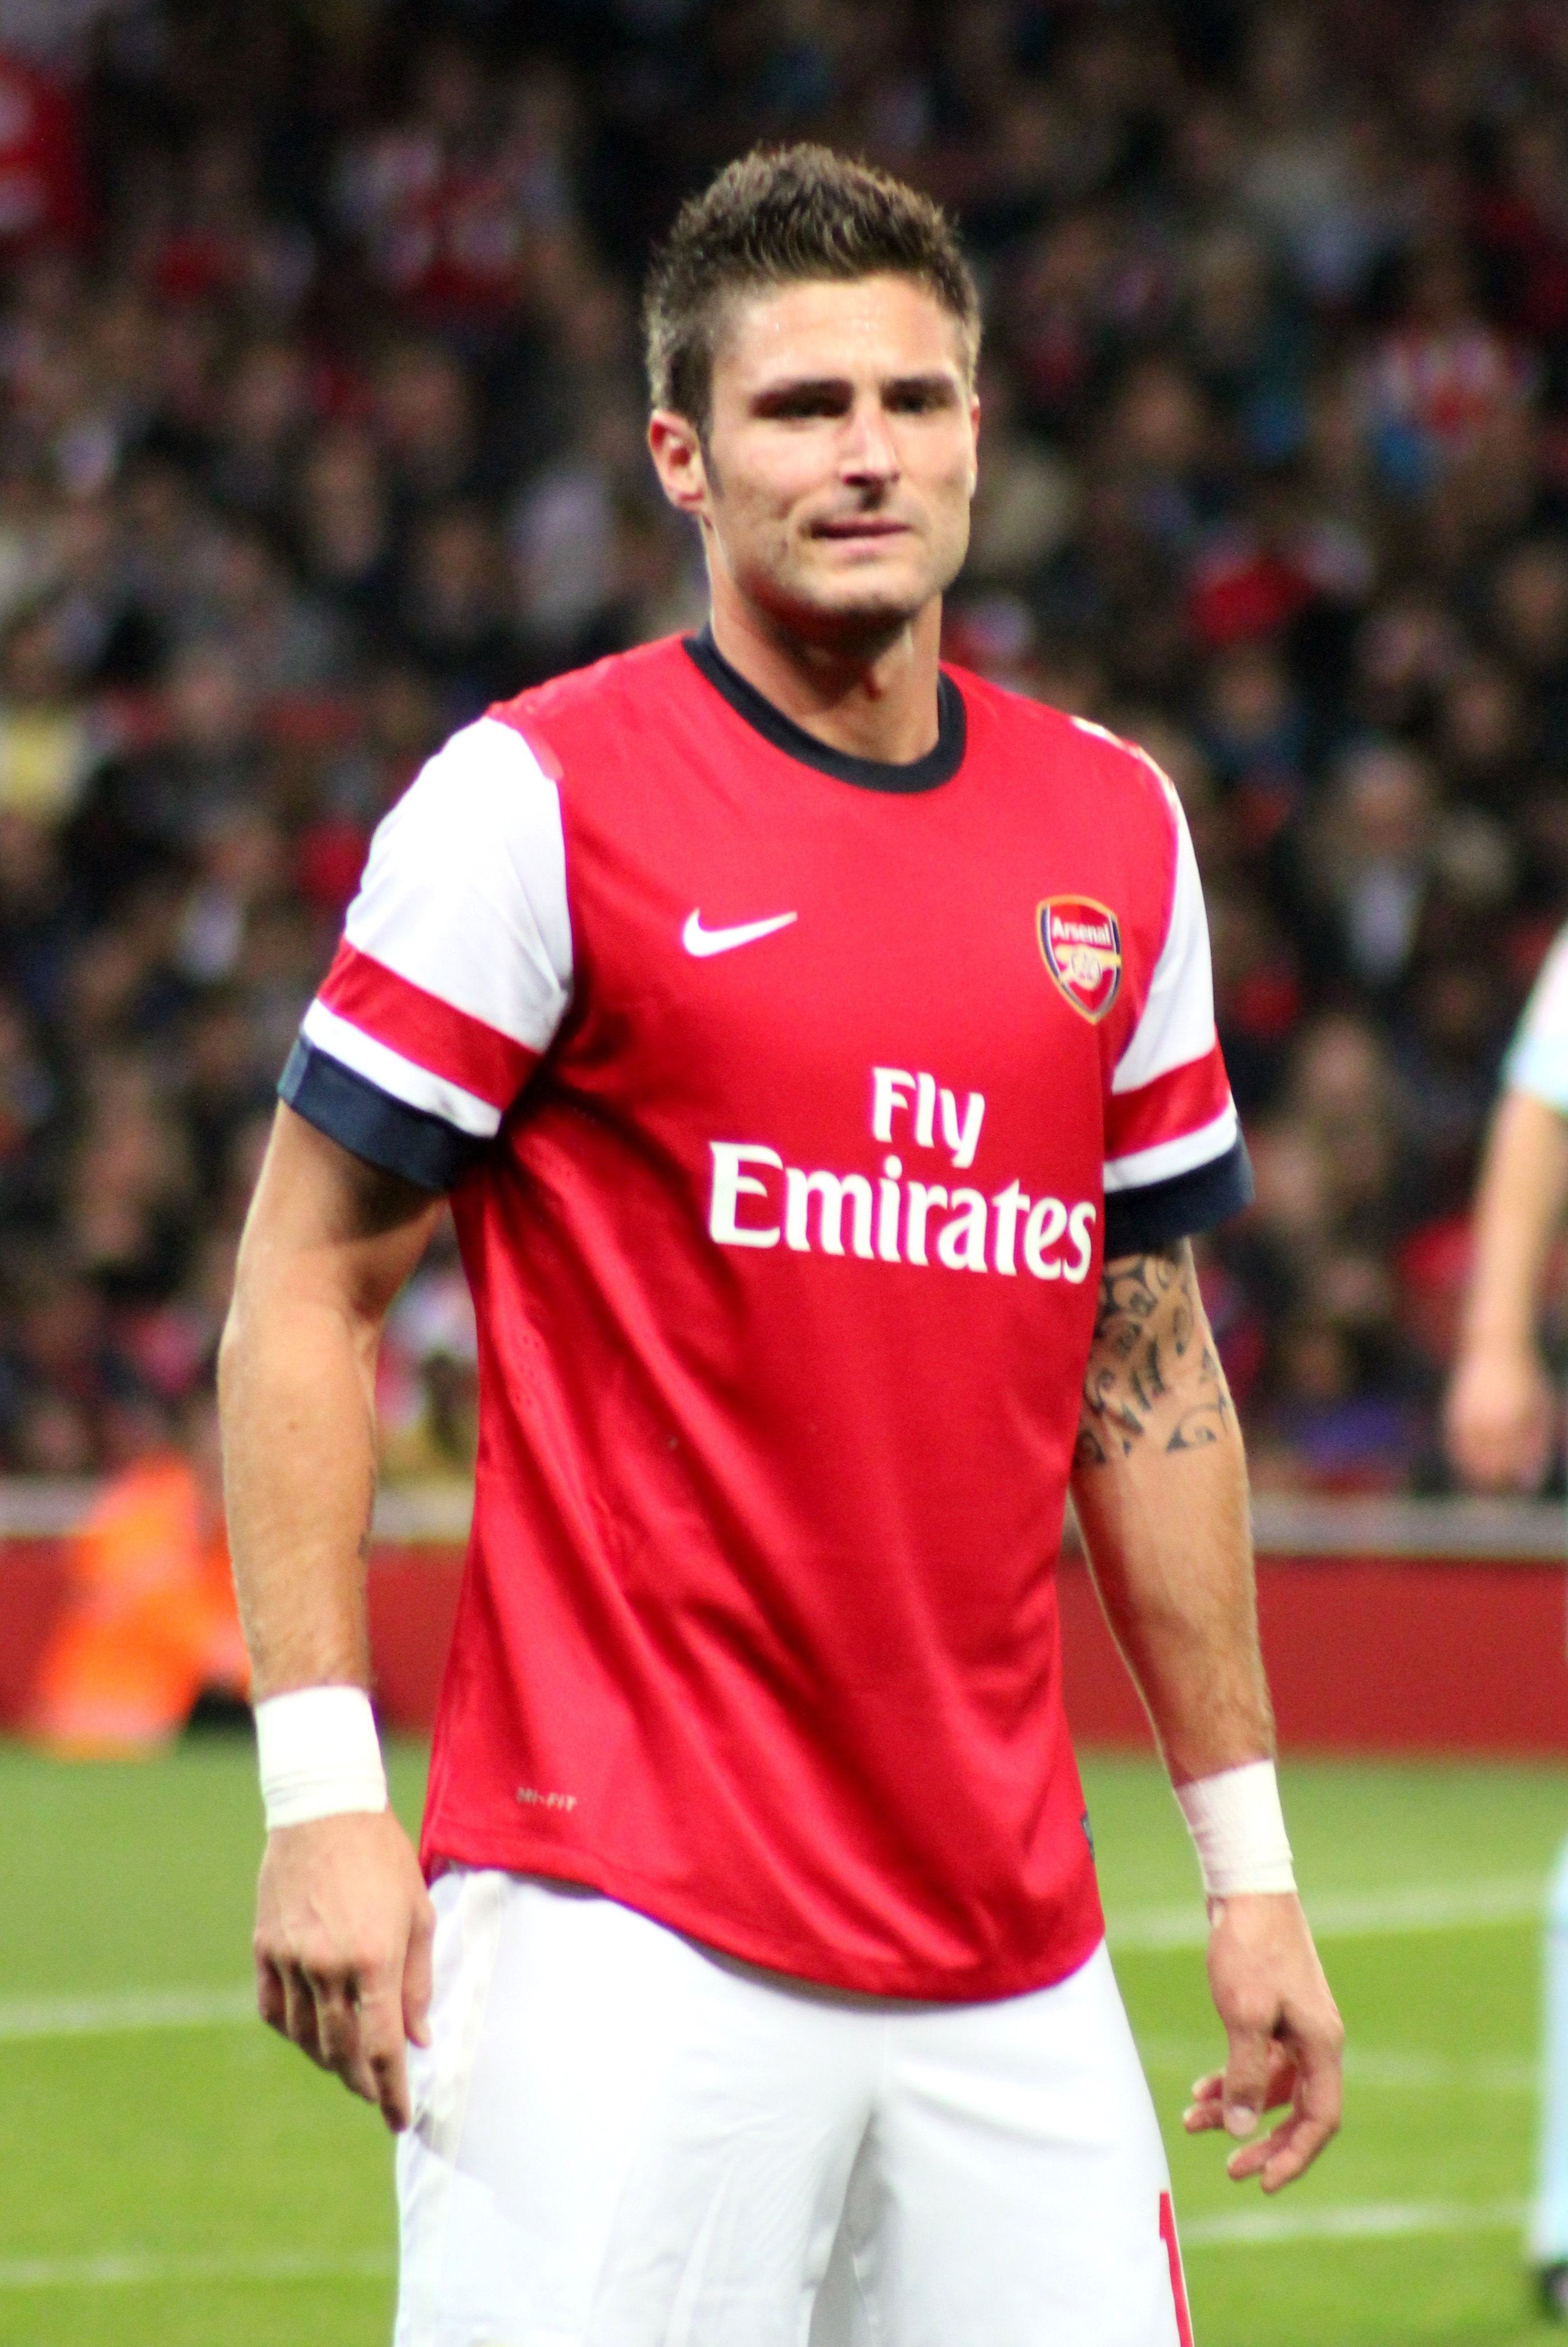 1000 images about olivier giroud on pinterest arsenal for Olivier giroud squadre attuali